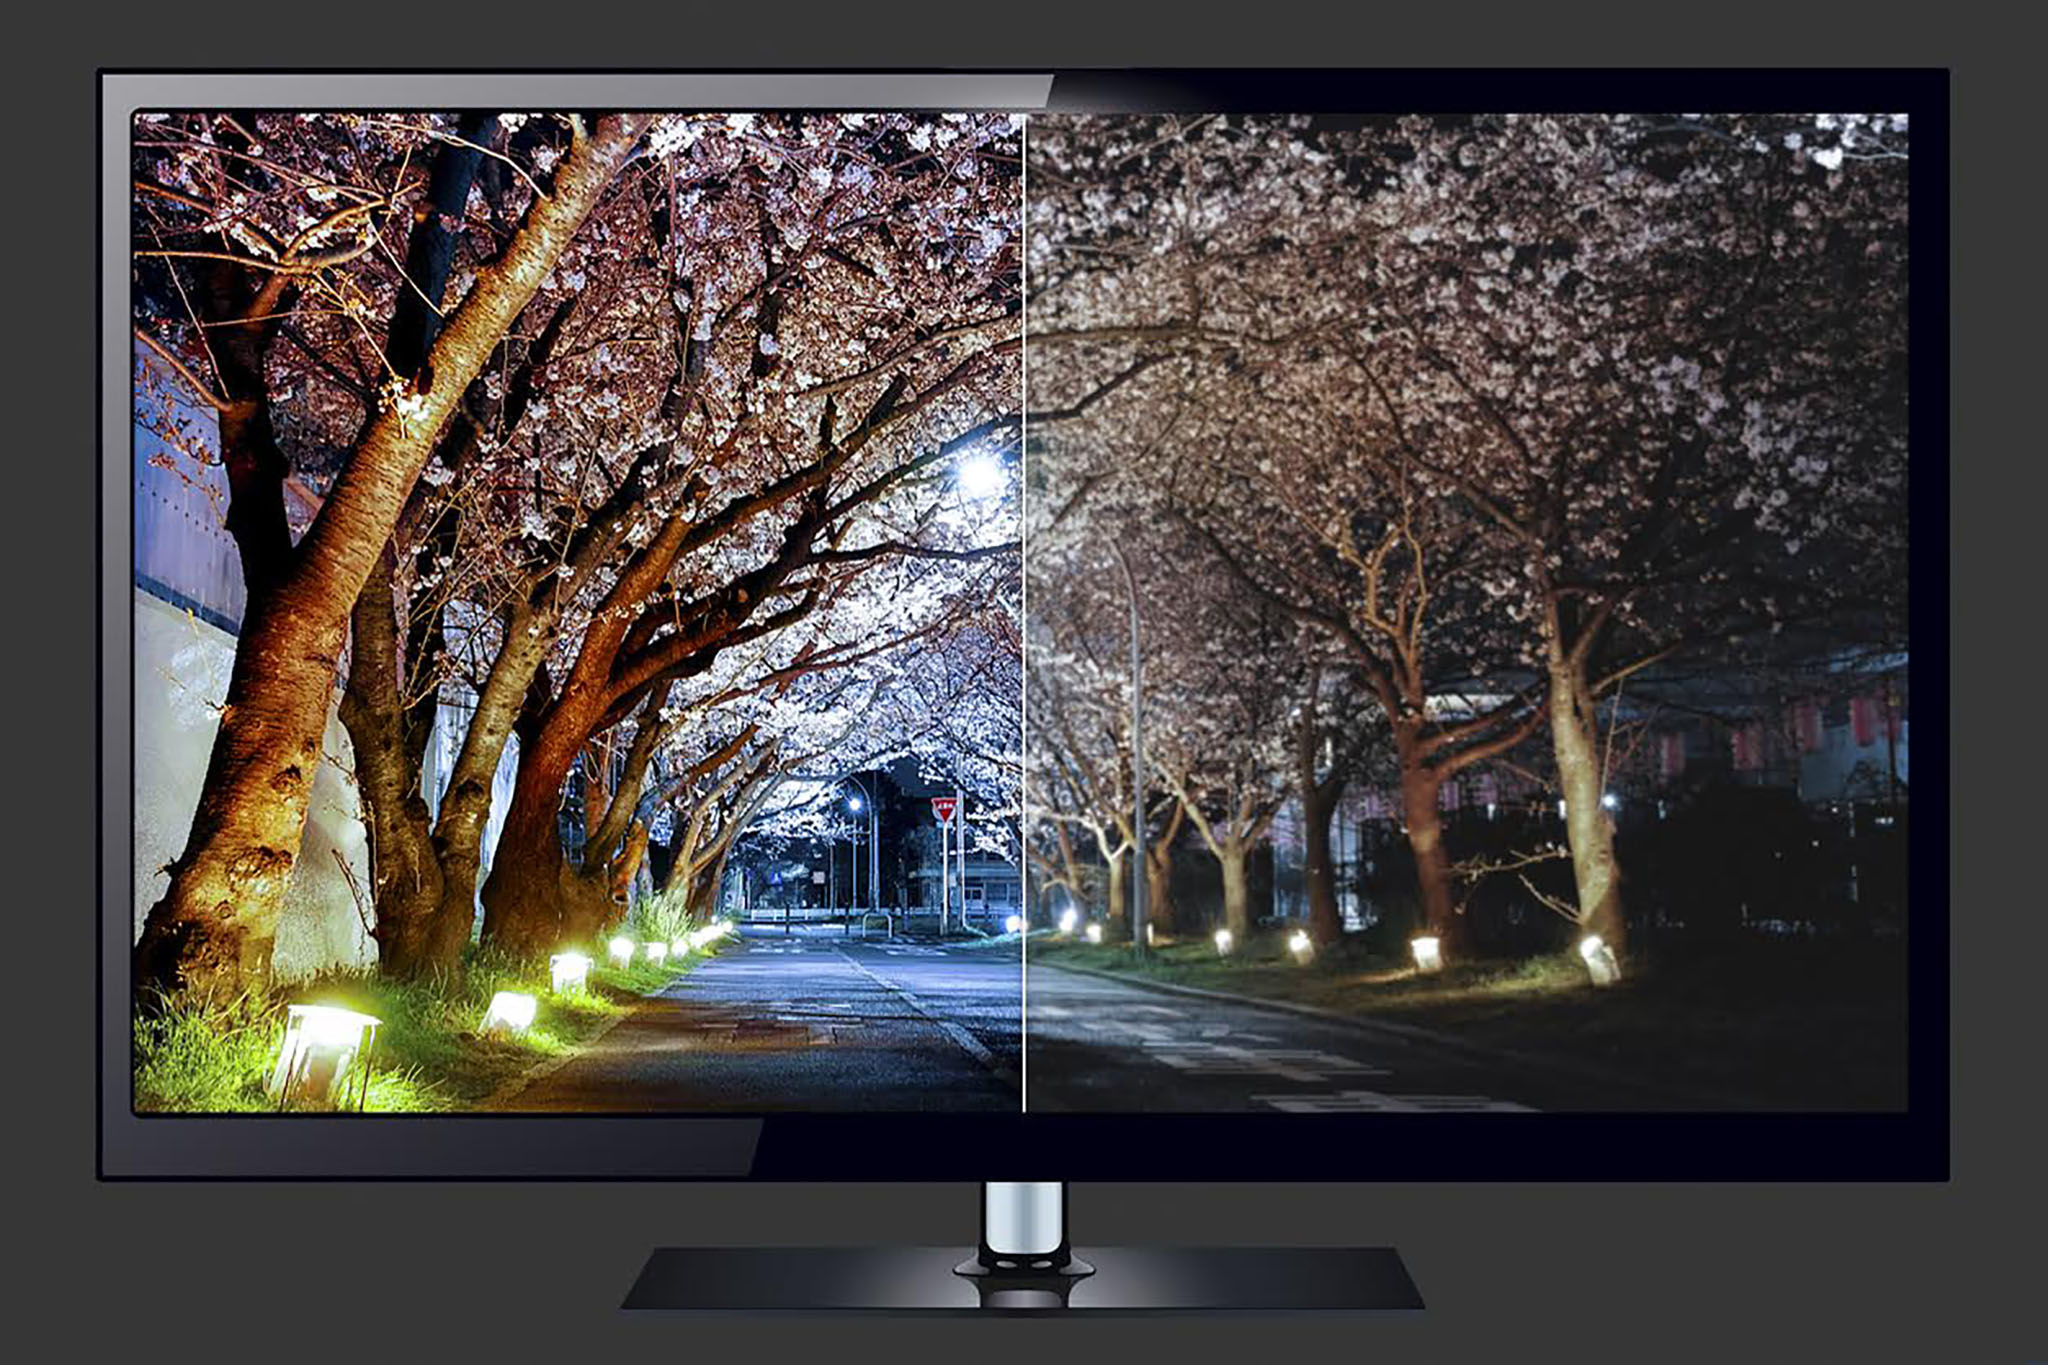 Integrating HDR with HEVC video encoding